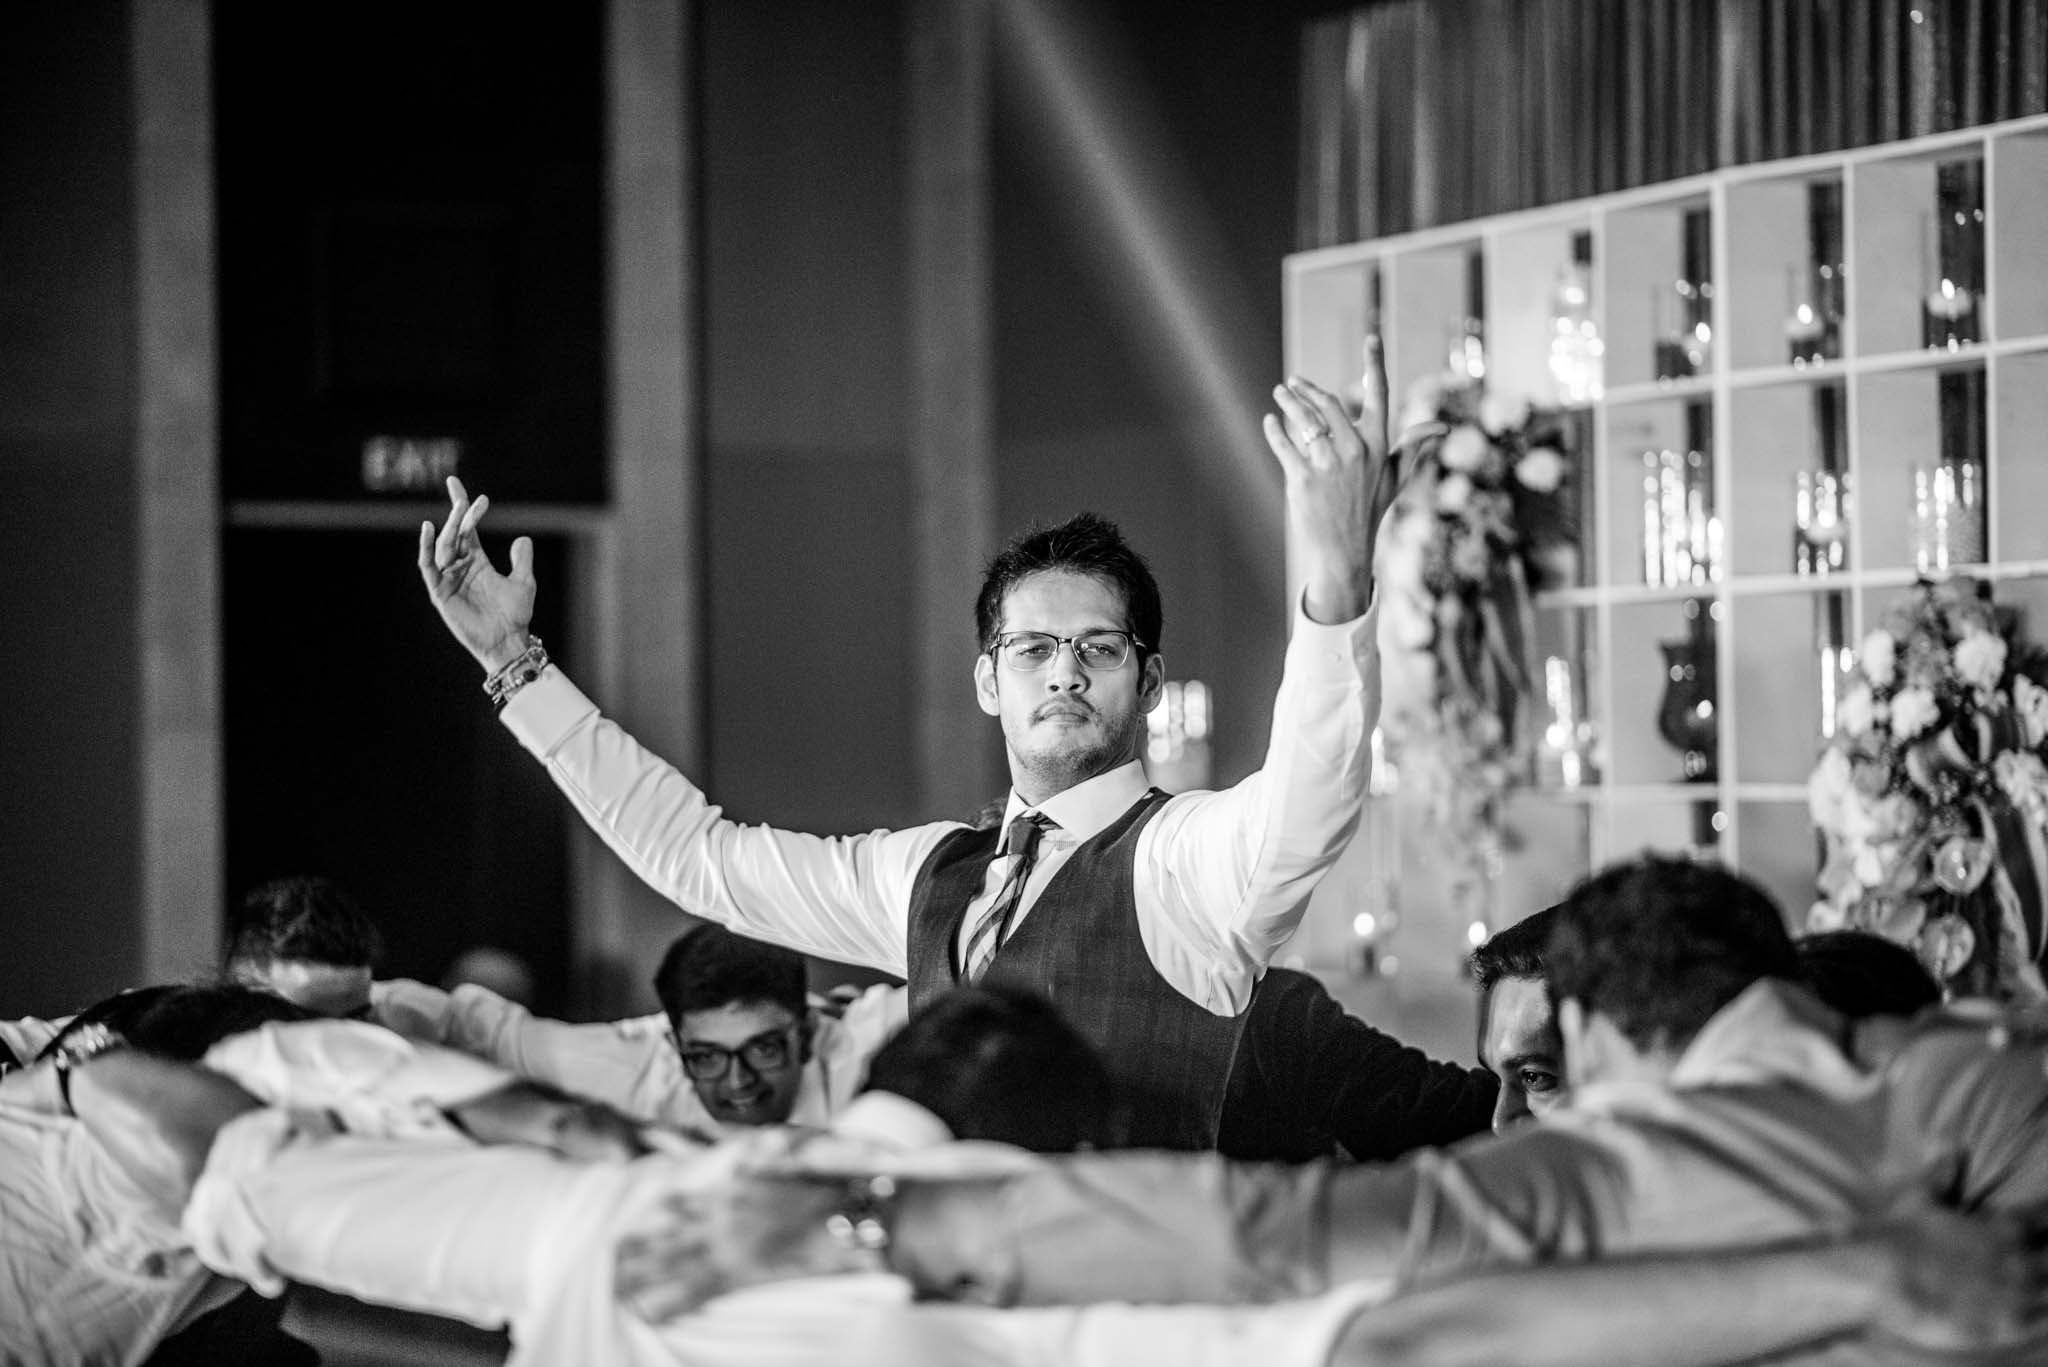 StRegis-Palladium-Mumbai-Candid-Wedding-Photography-74